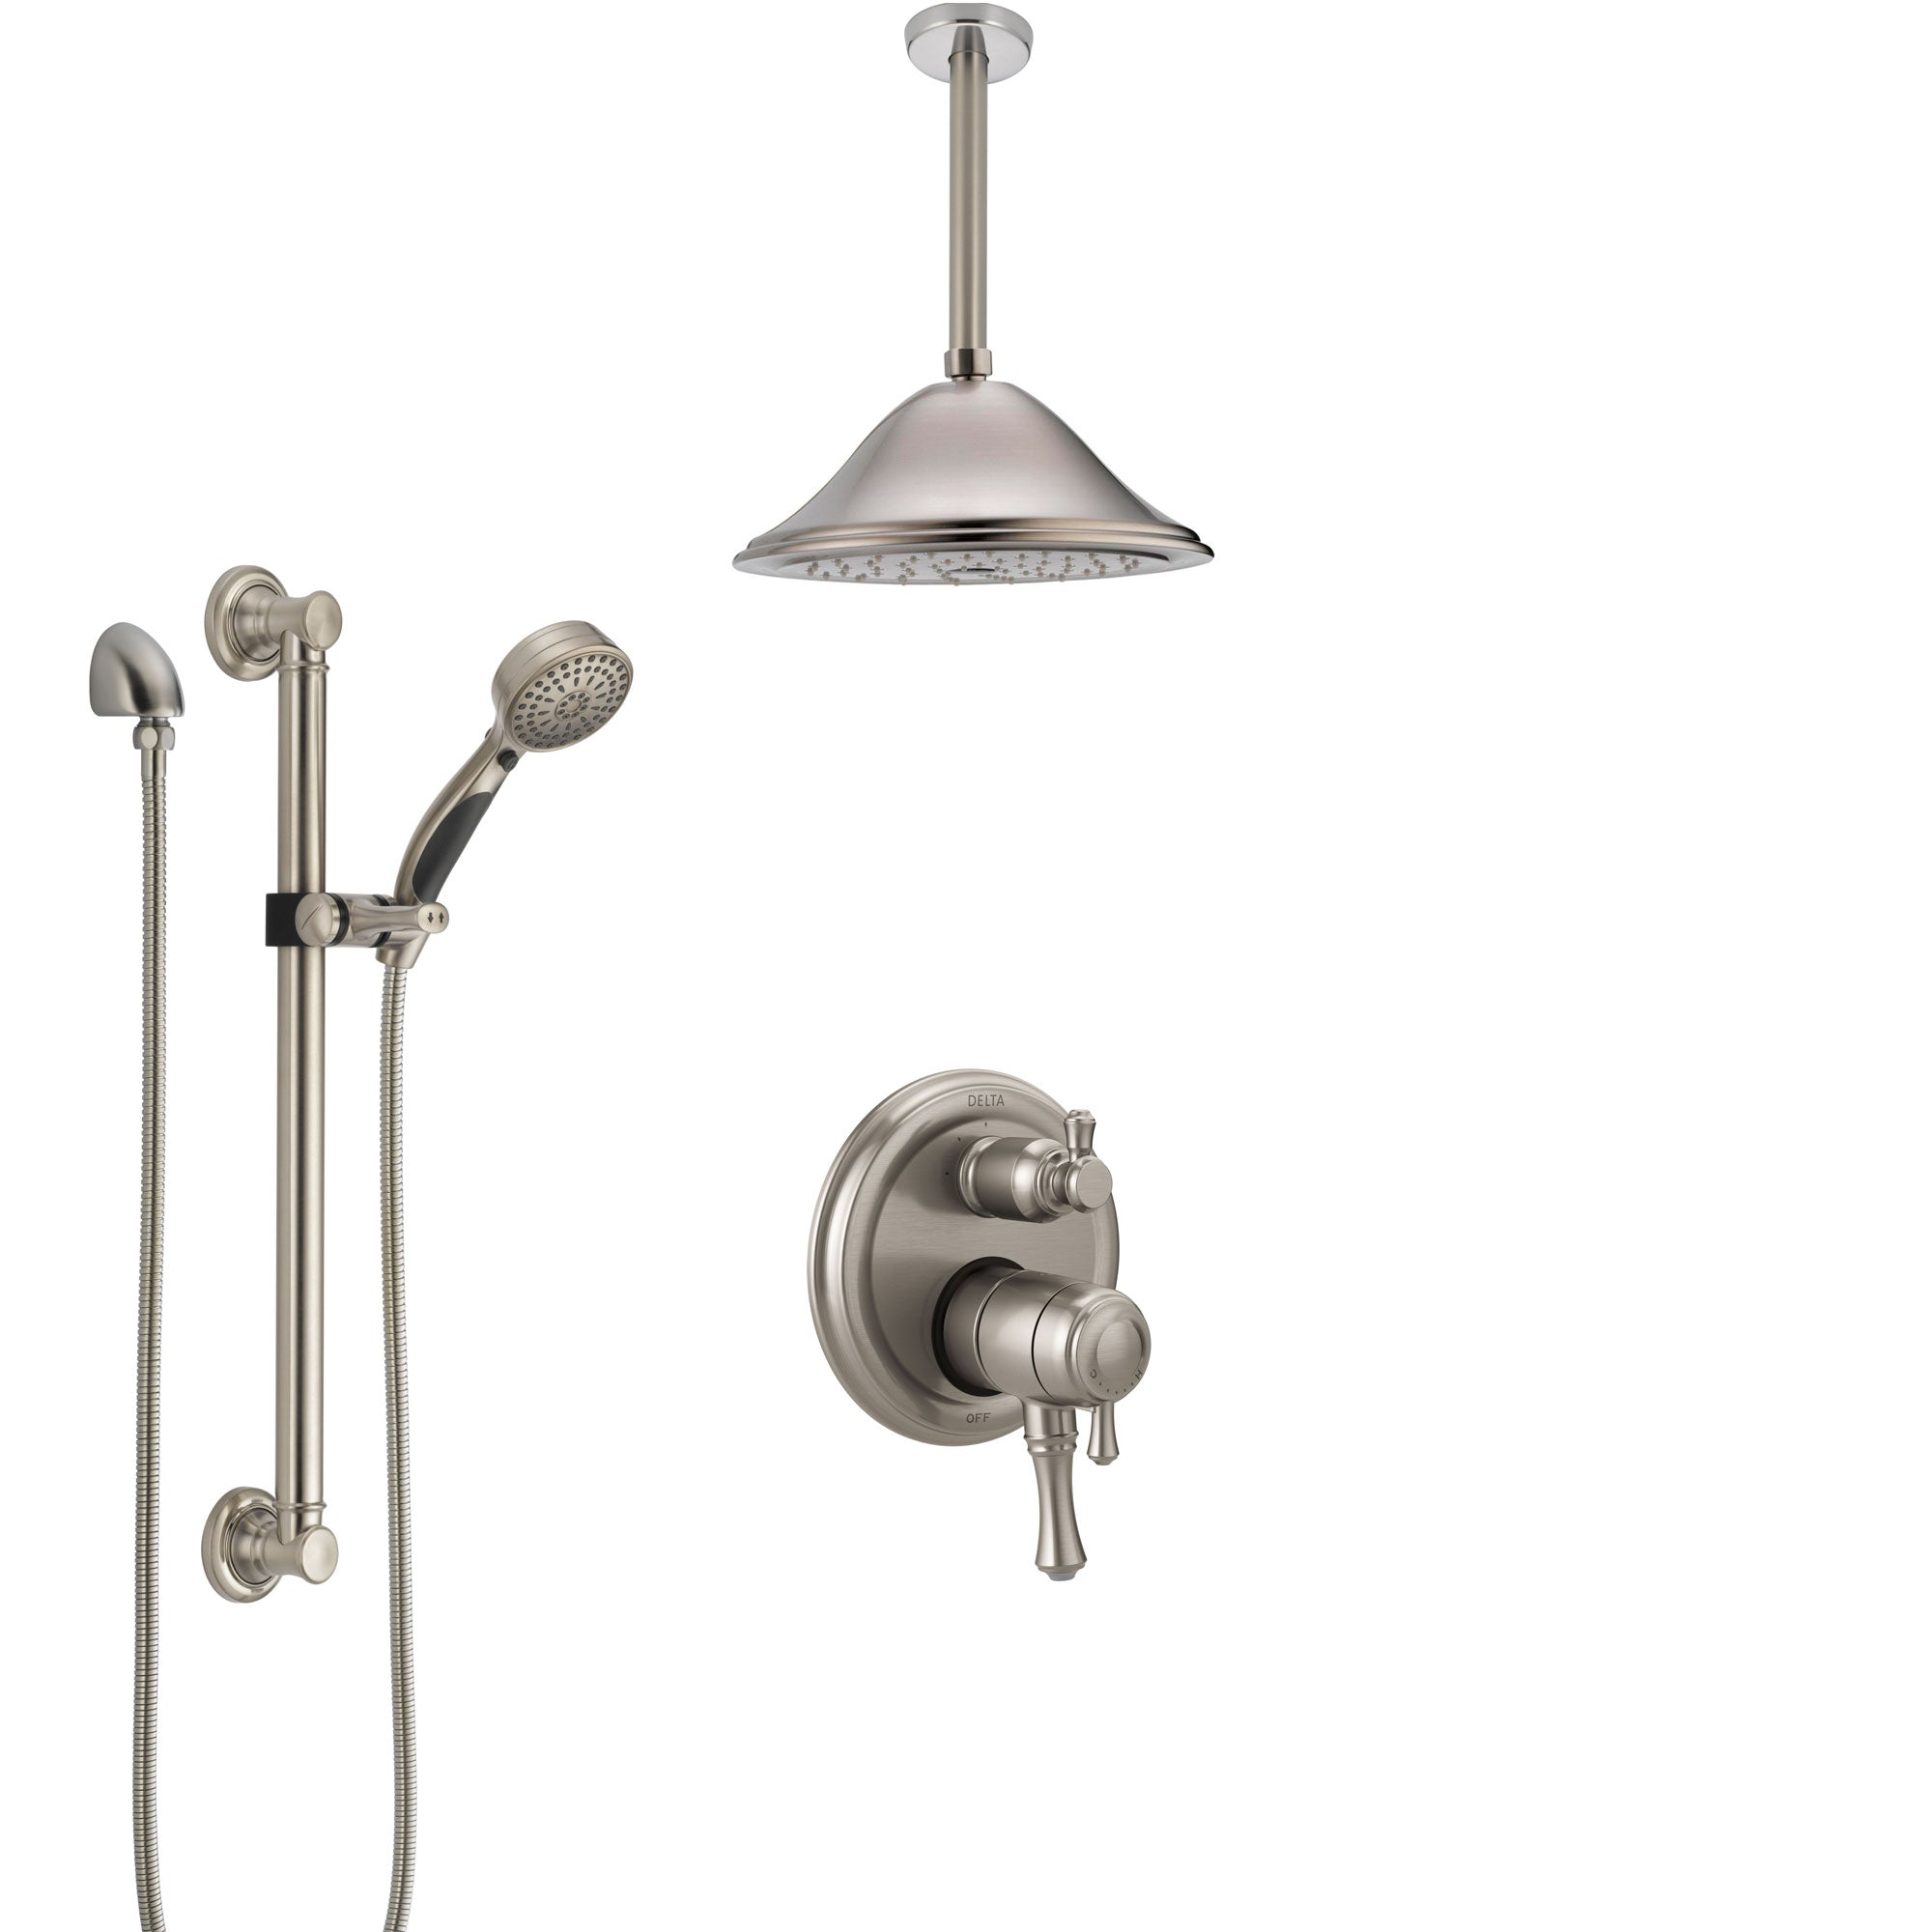 Delta Cassidy Dual Control Handle Stainless Steel Finish Integrated Diverter Shower System, Ceiling Showerhead, and Grab Bar Hand Shower SS27897SS8